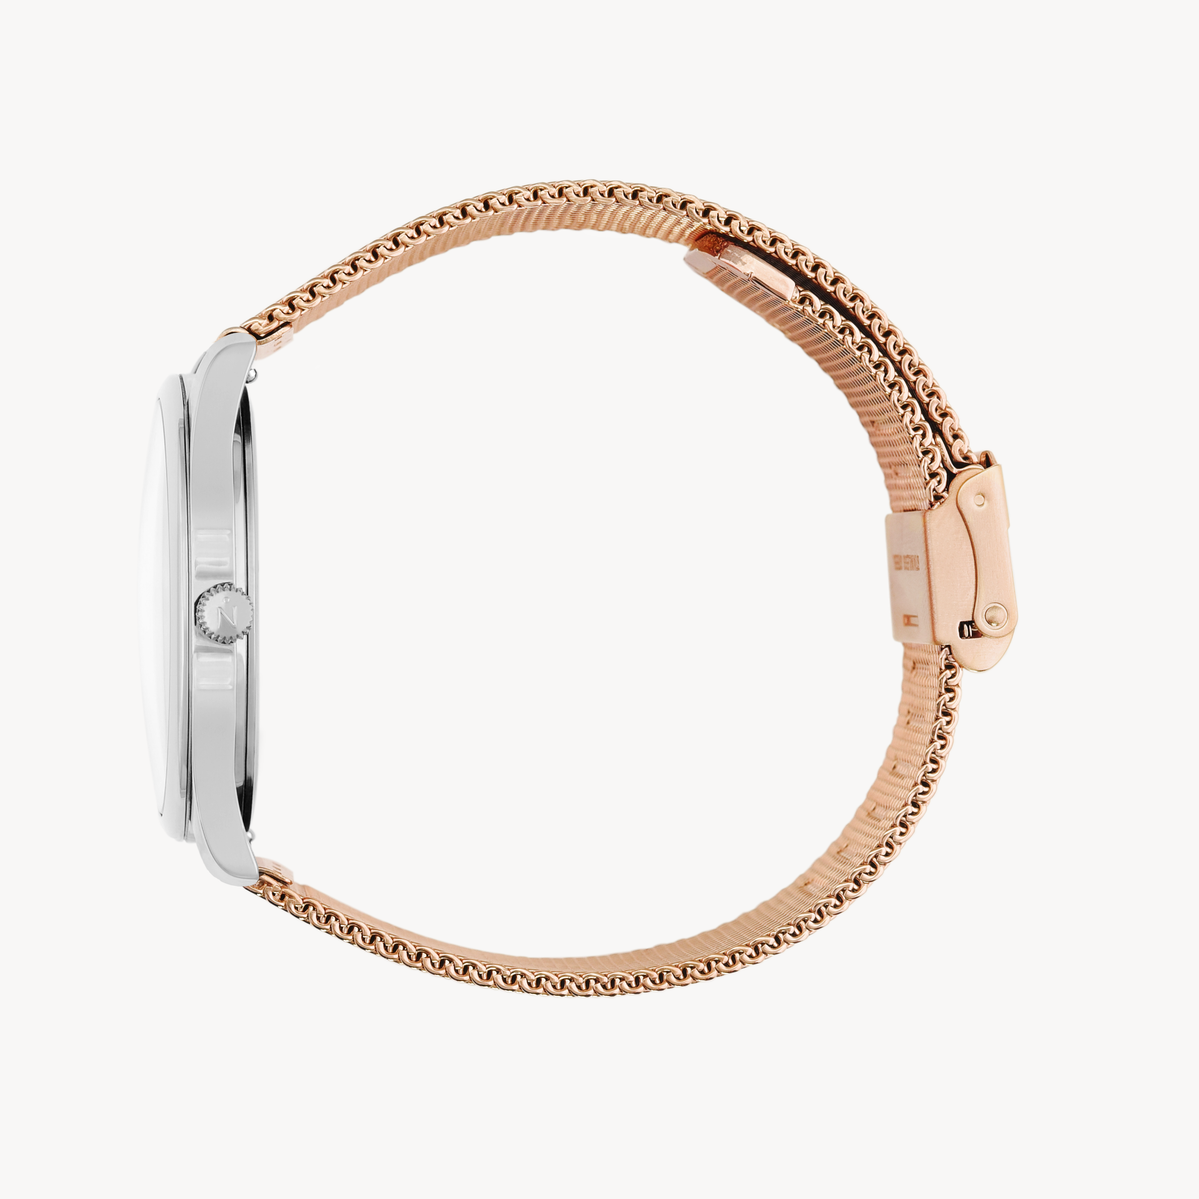 Lune 8 - Stainless Steel - Rose Gold Mesh